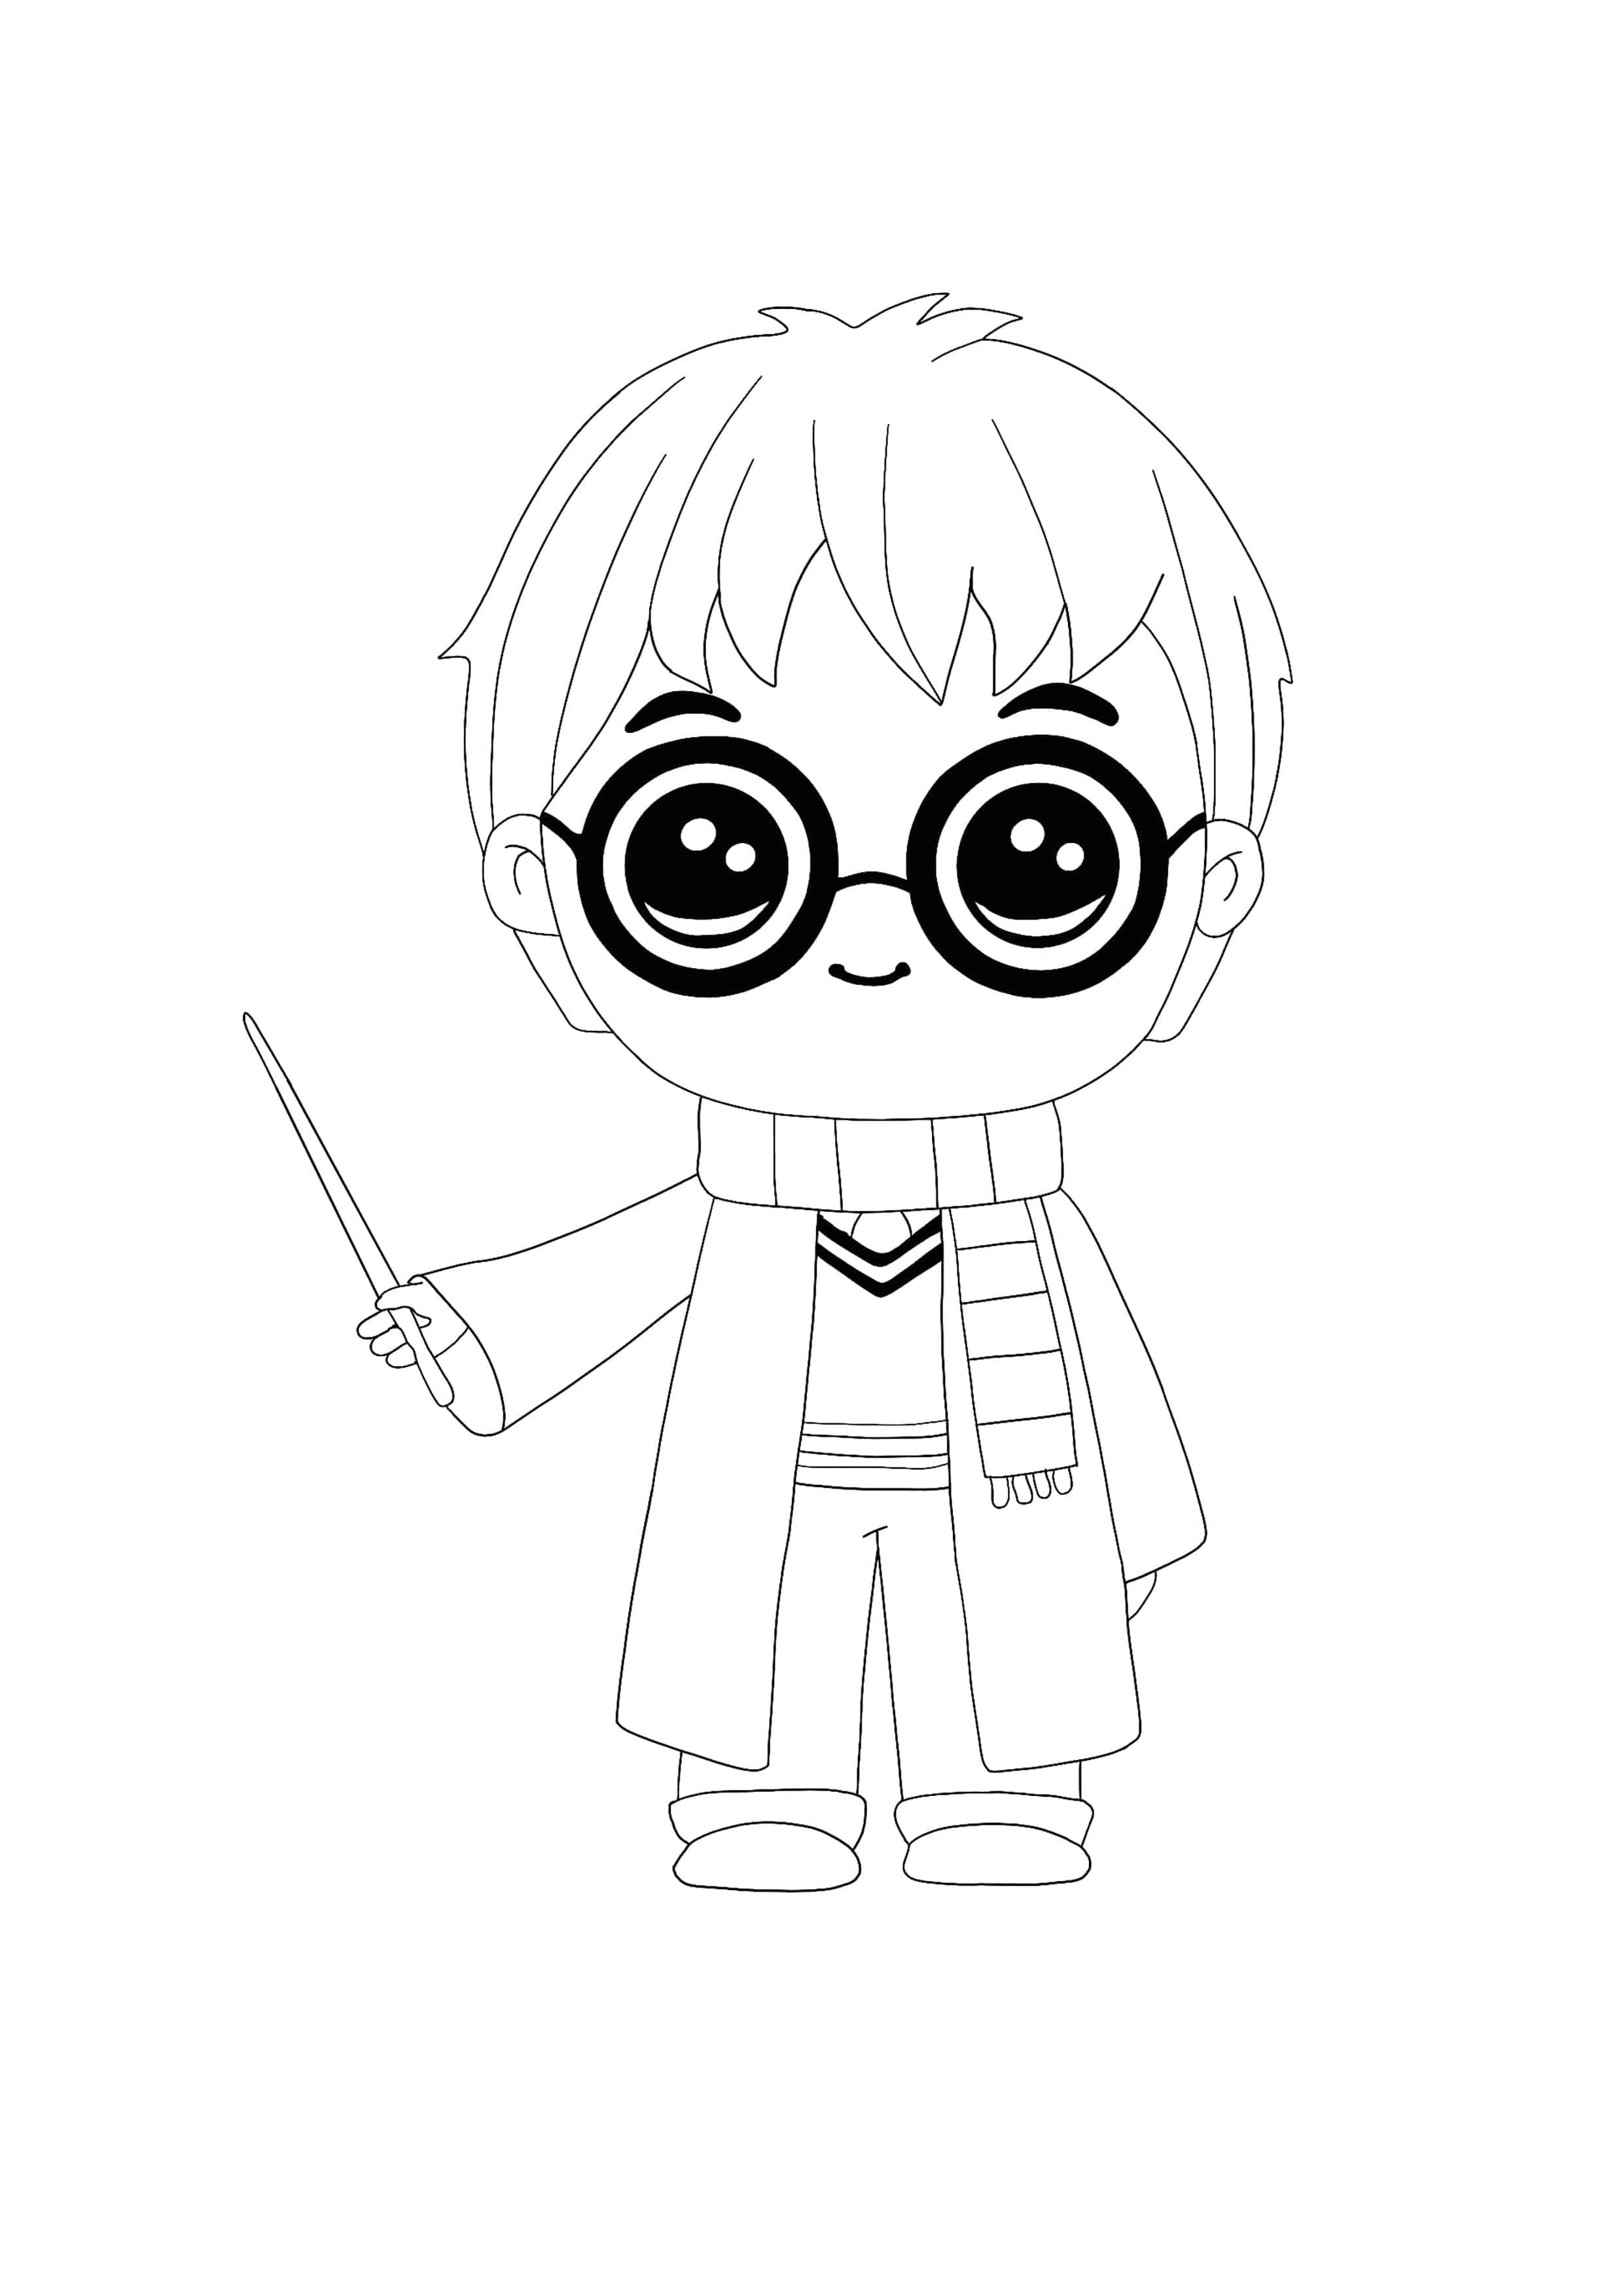 Kawaii Harry Potter Coloring Page Harry Potter Coloring Pages Harry Potter Printables Harry Potter Colors